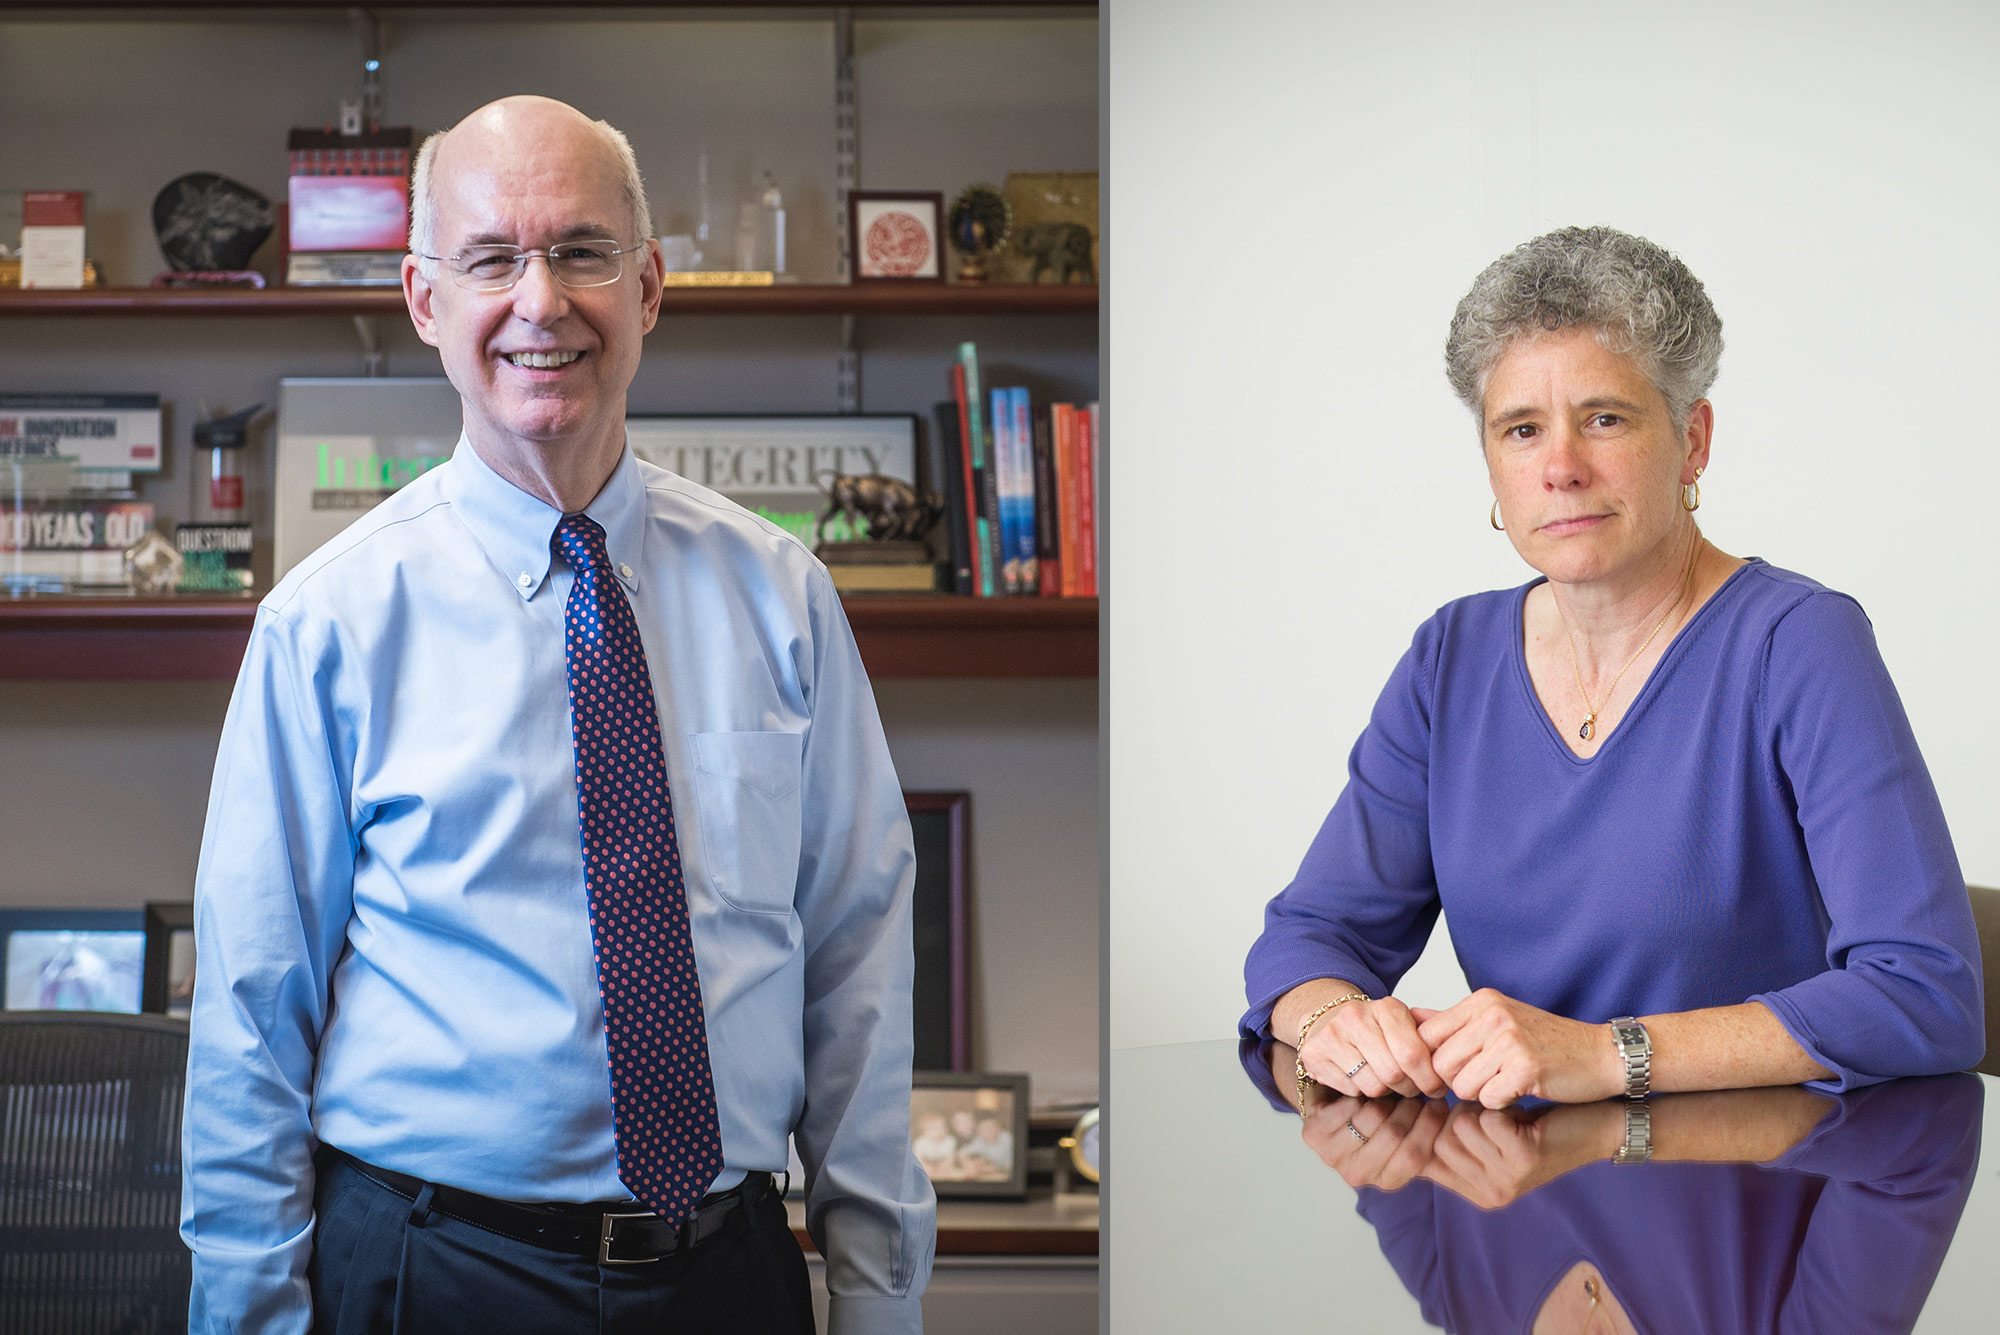 Left, Kenneth Freeman, BU Questrom School of Business dean emeritus and a professor of the practice, has replaced Diane Tucker (right) as BU's Human Resources chief until a permanent successor is named. Freeman photo by Jackie Ricciardi; Tucker photo by Cydney Scott